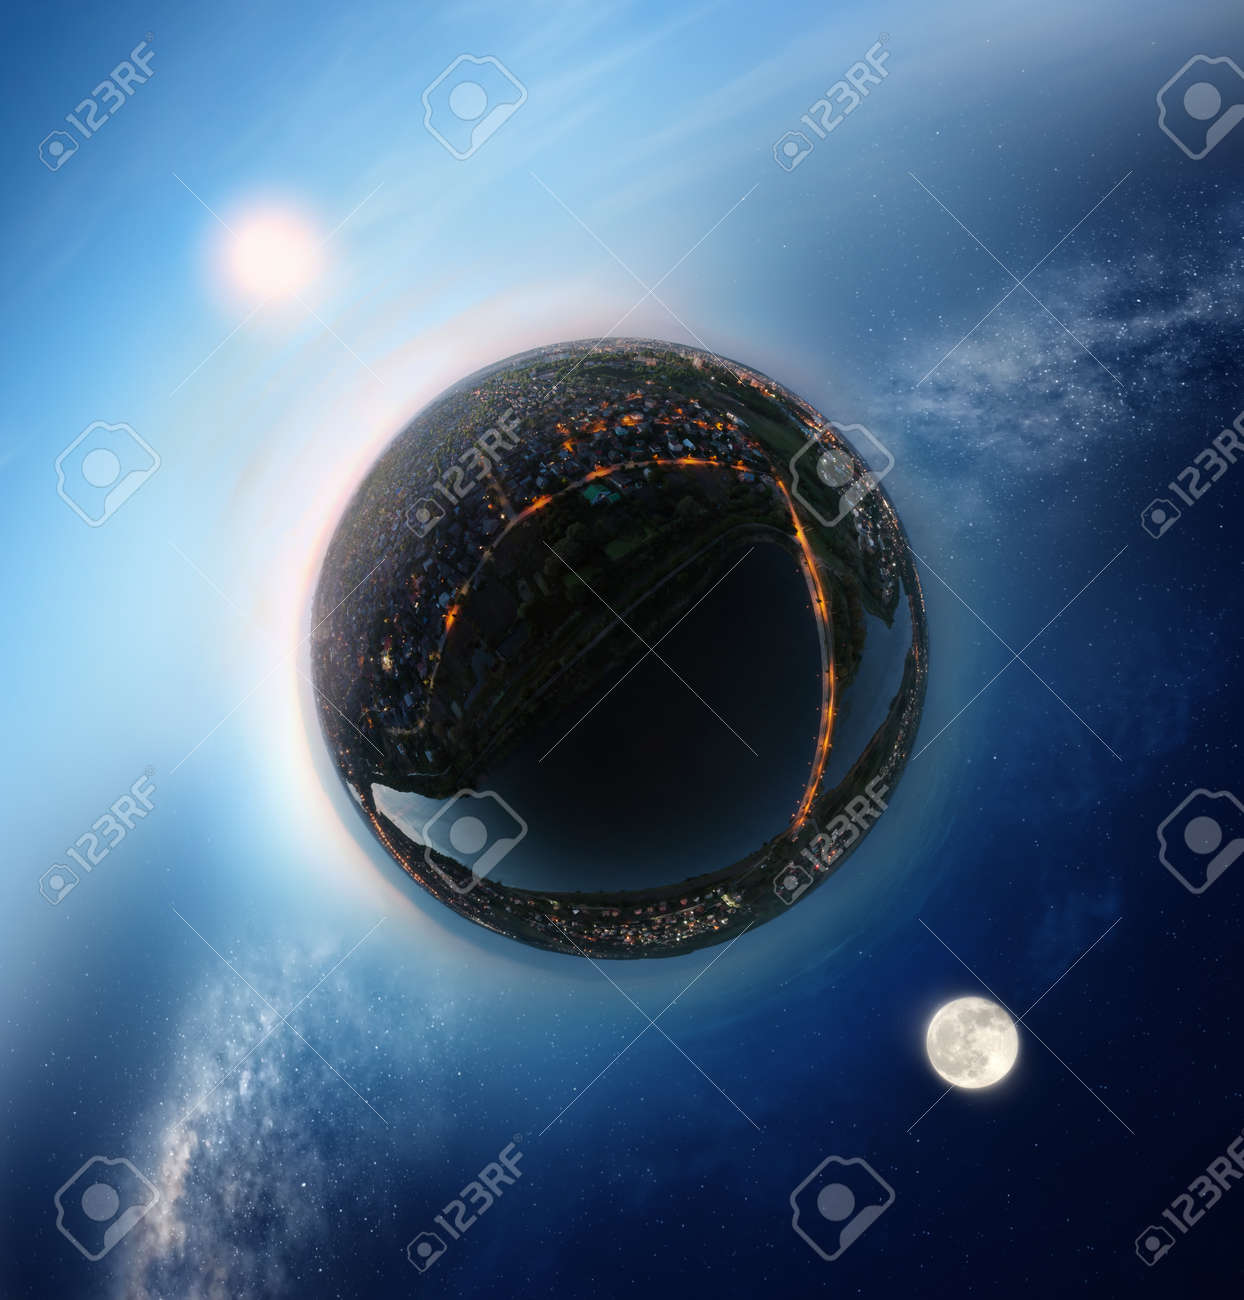 Tiny planet with sunny sky on one side and night sky on the other - conceptual image for time, opposition etc. - 108687321